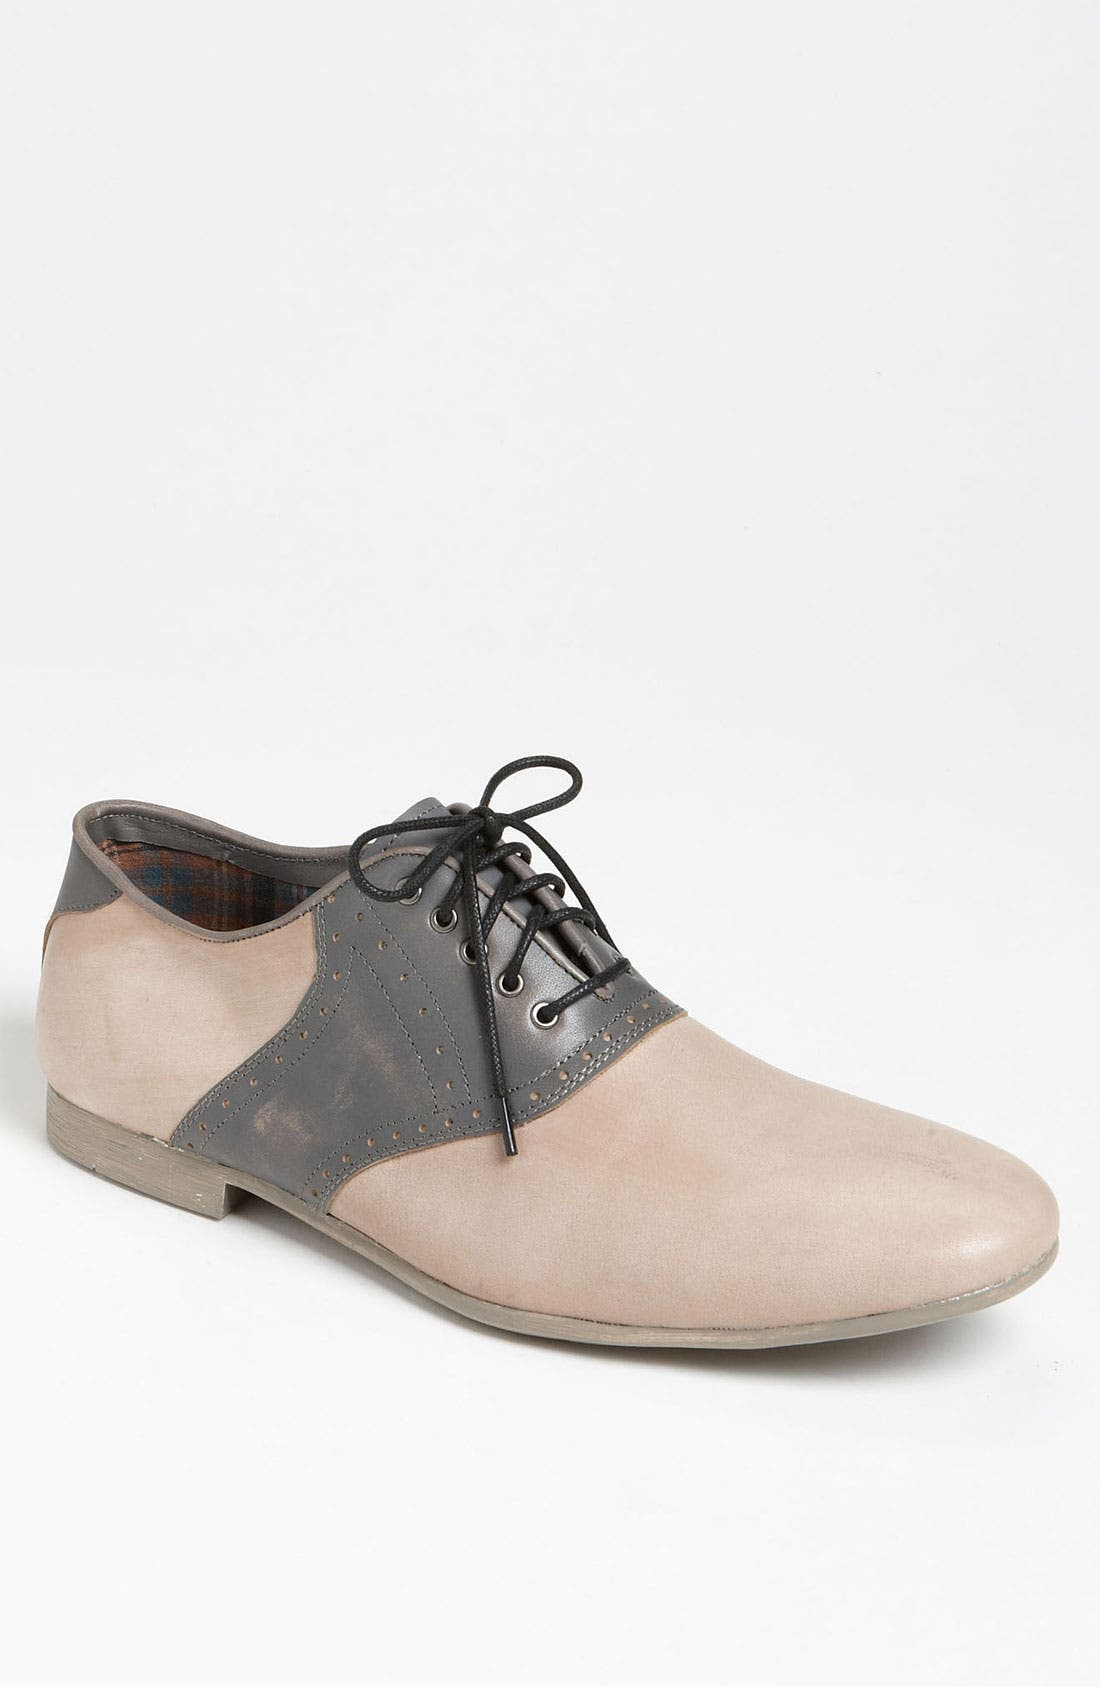 Alternate Image 1 Selected - Bed Stu 'Orleans' Saddle Shoe (Online Only)